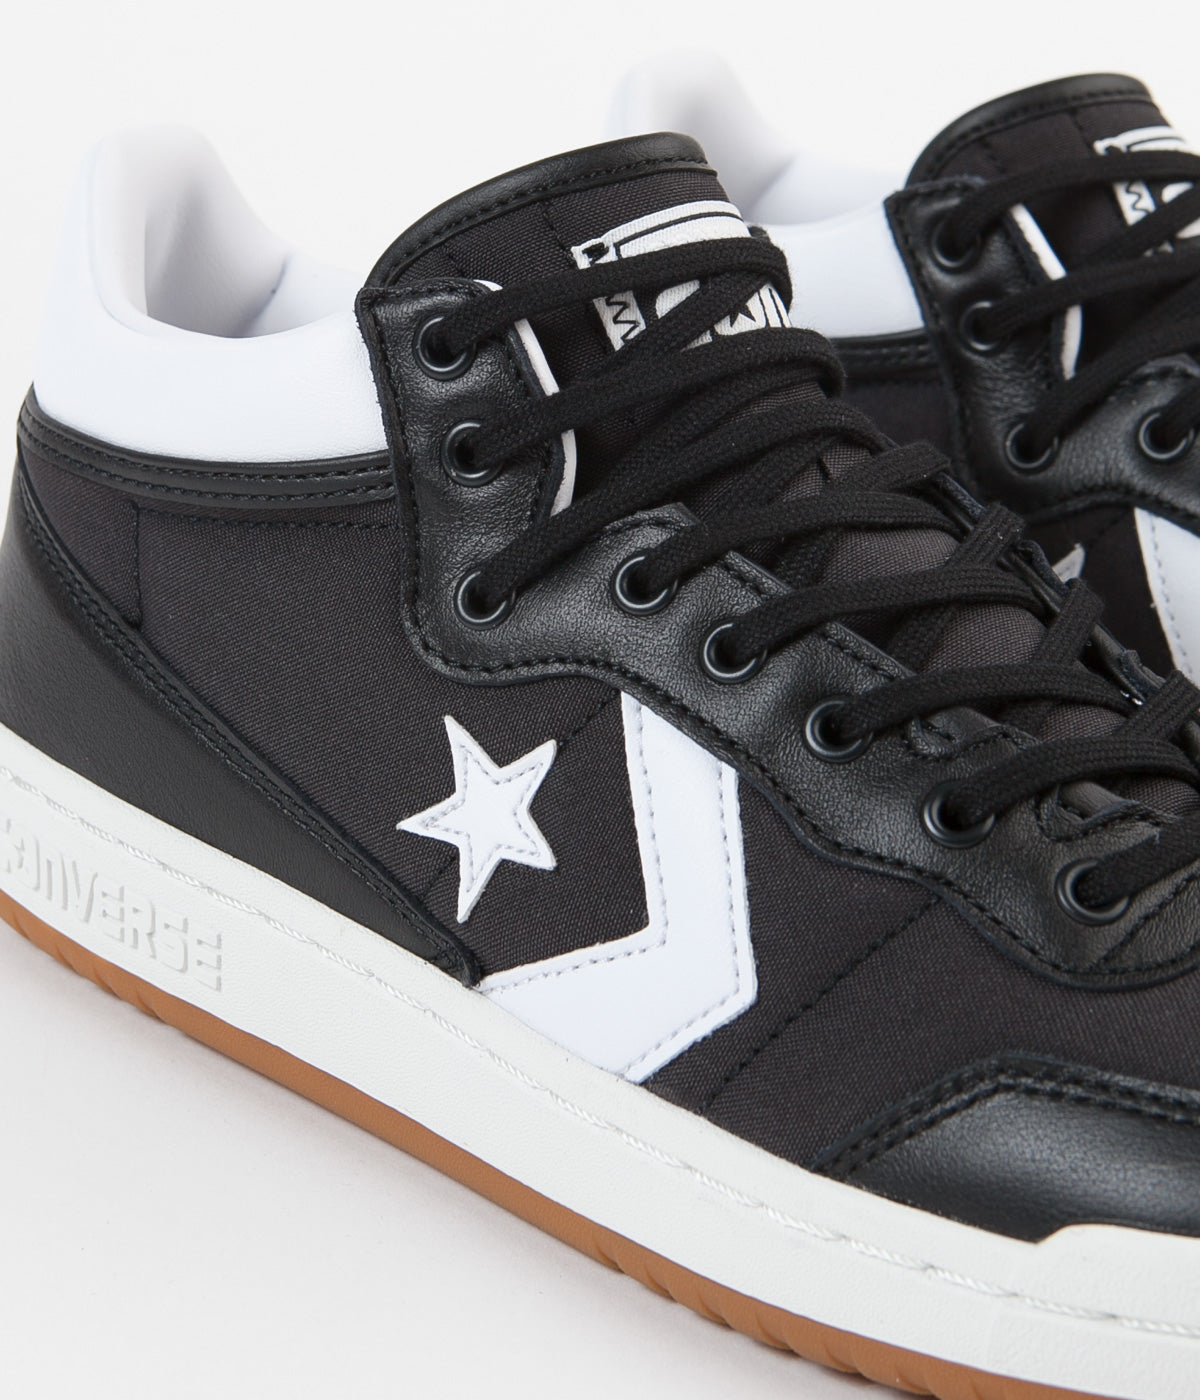 Converse Fastbreak Pro Mid Leather OG Block Shoes - Black / White / Gum